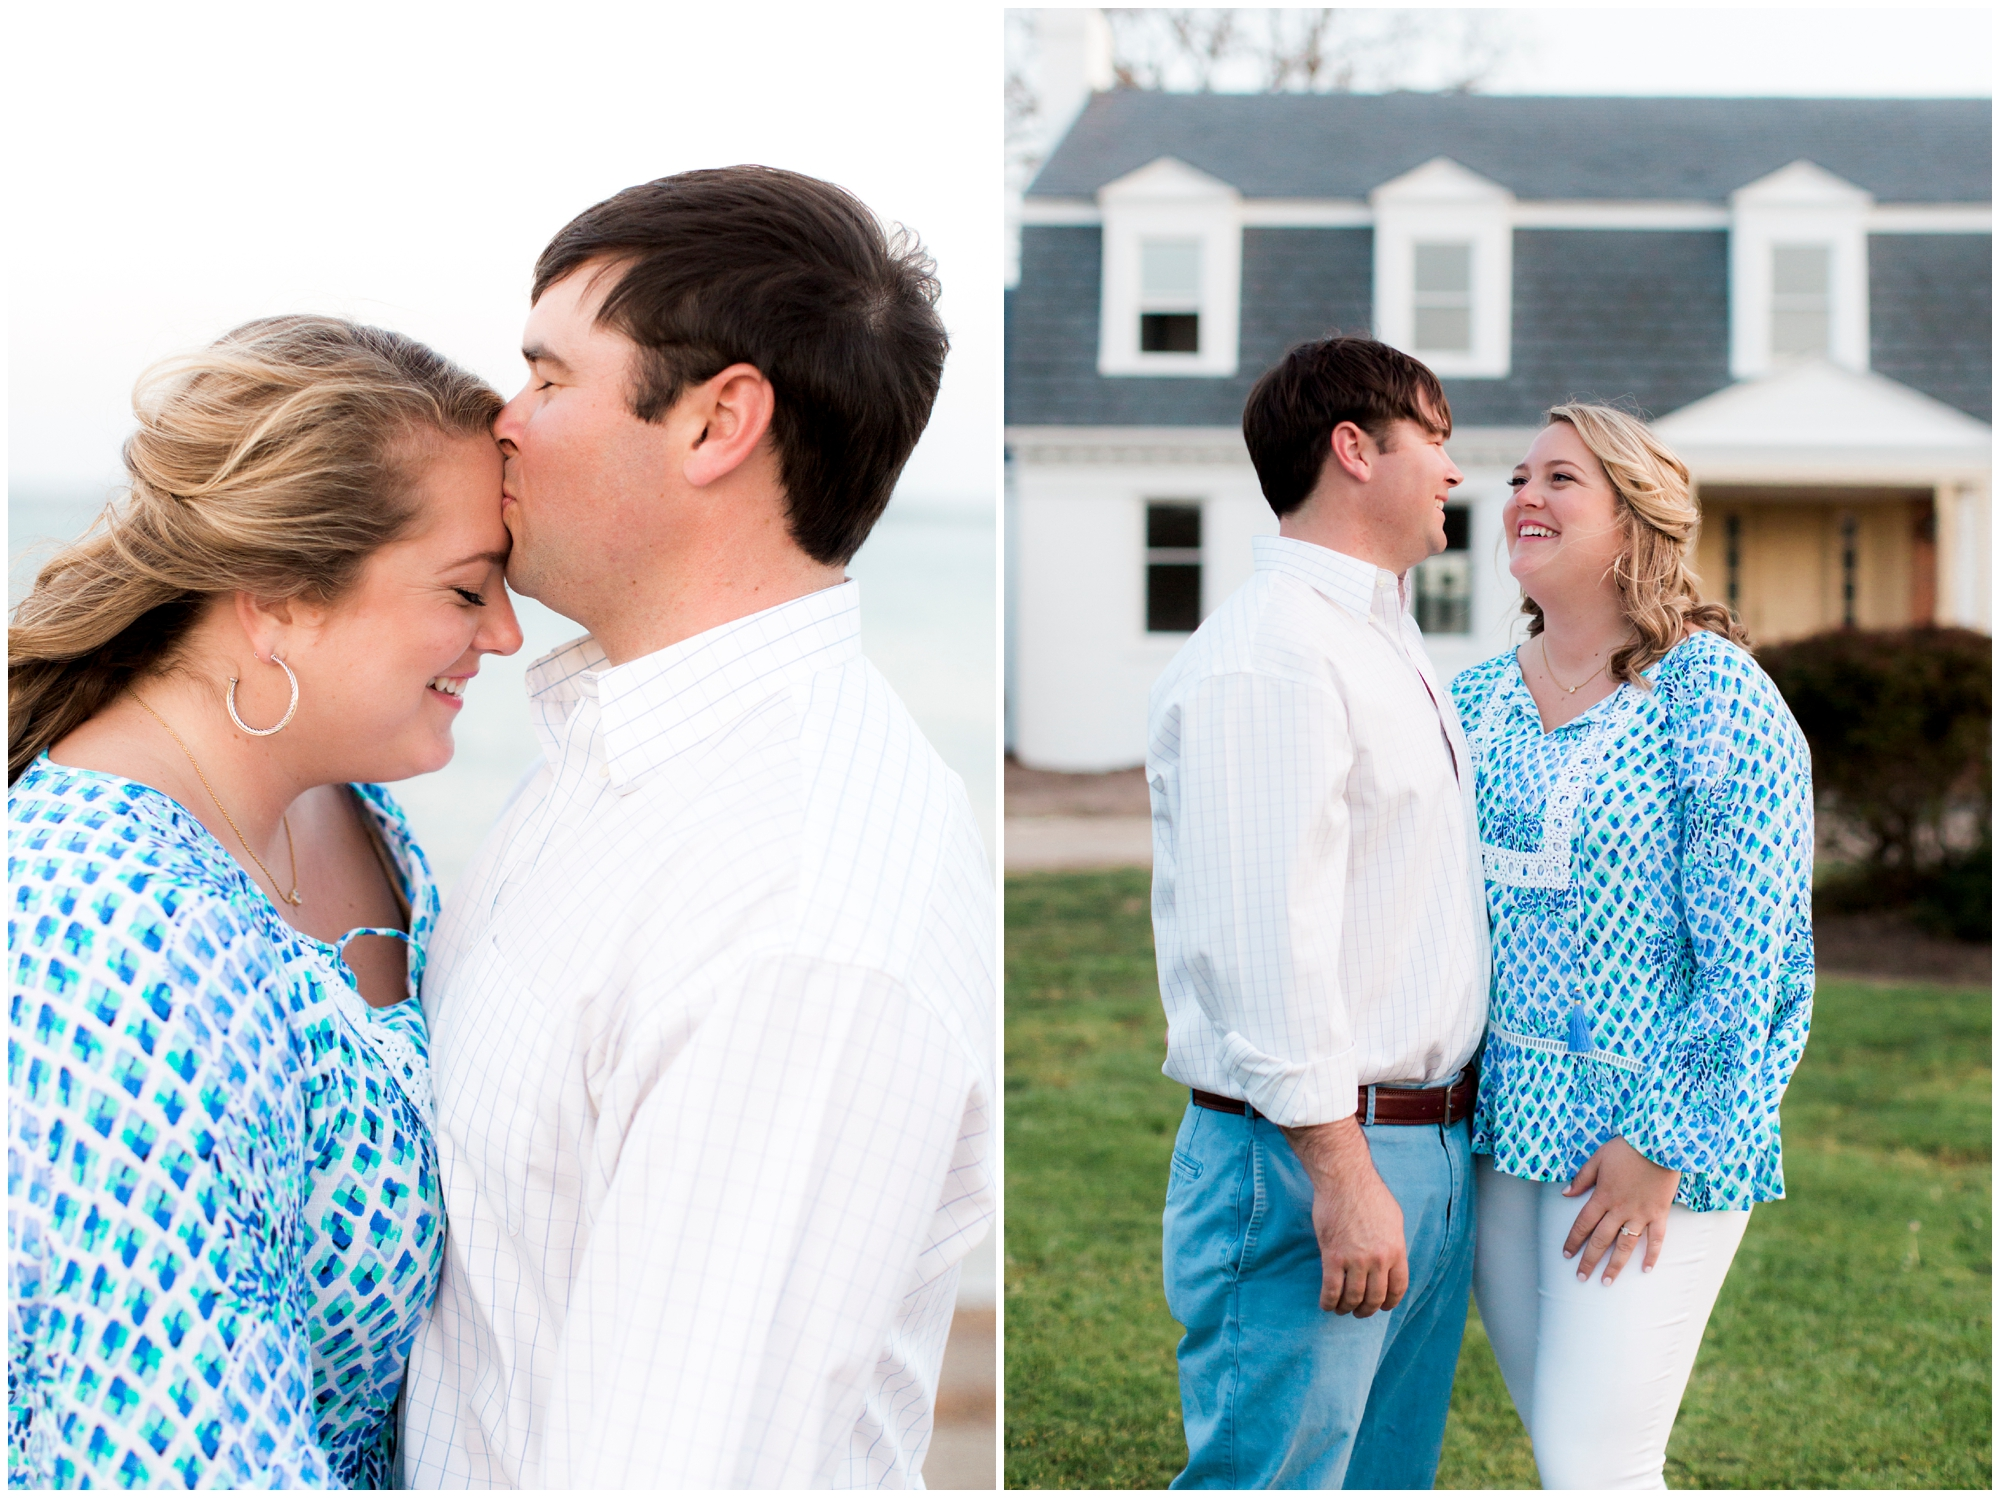 Rachel-Robert-Urbanna-Virginia-Spring-Engagement-Photos_0016.jpg